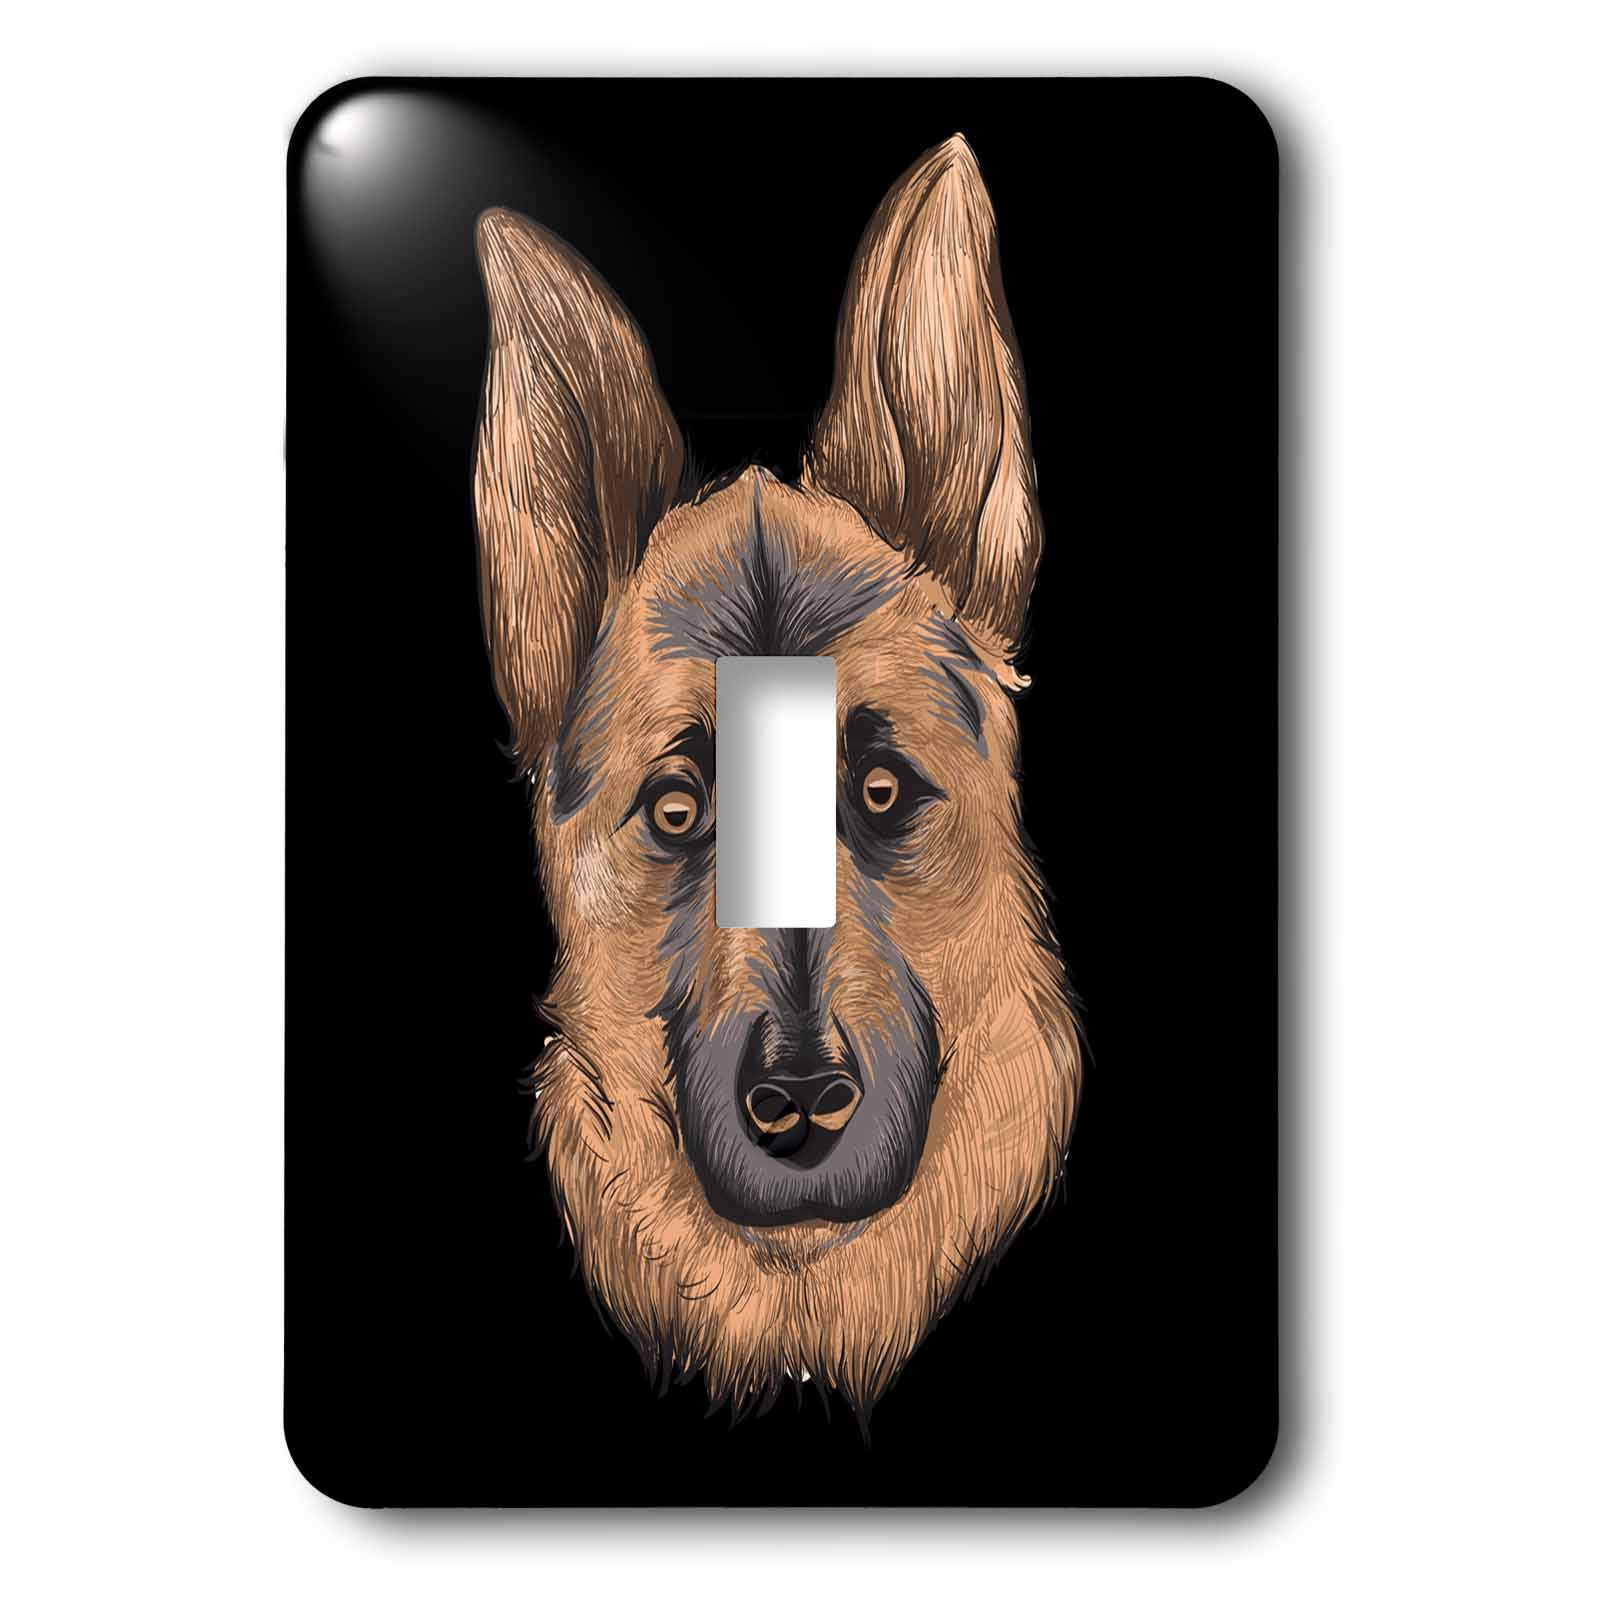 3dRose Sven Herkenrath - Animal - Portrait of a Gorgeous German Shepherd Dog on Black Background - Light Switch Covers - single toggle switch (lsp_290744_1)